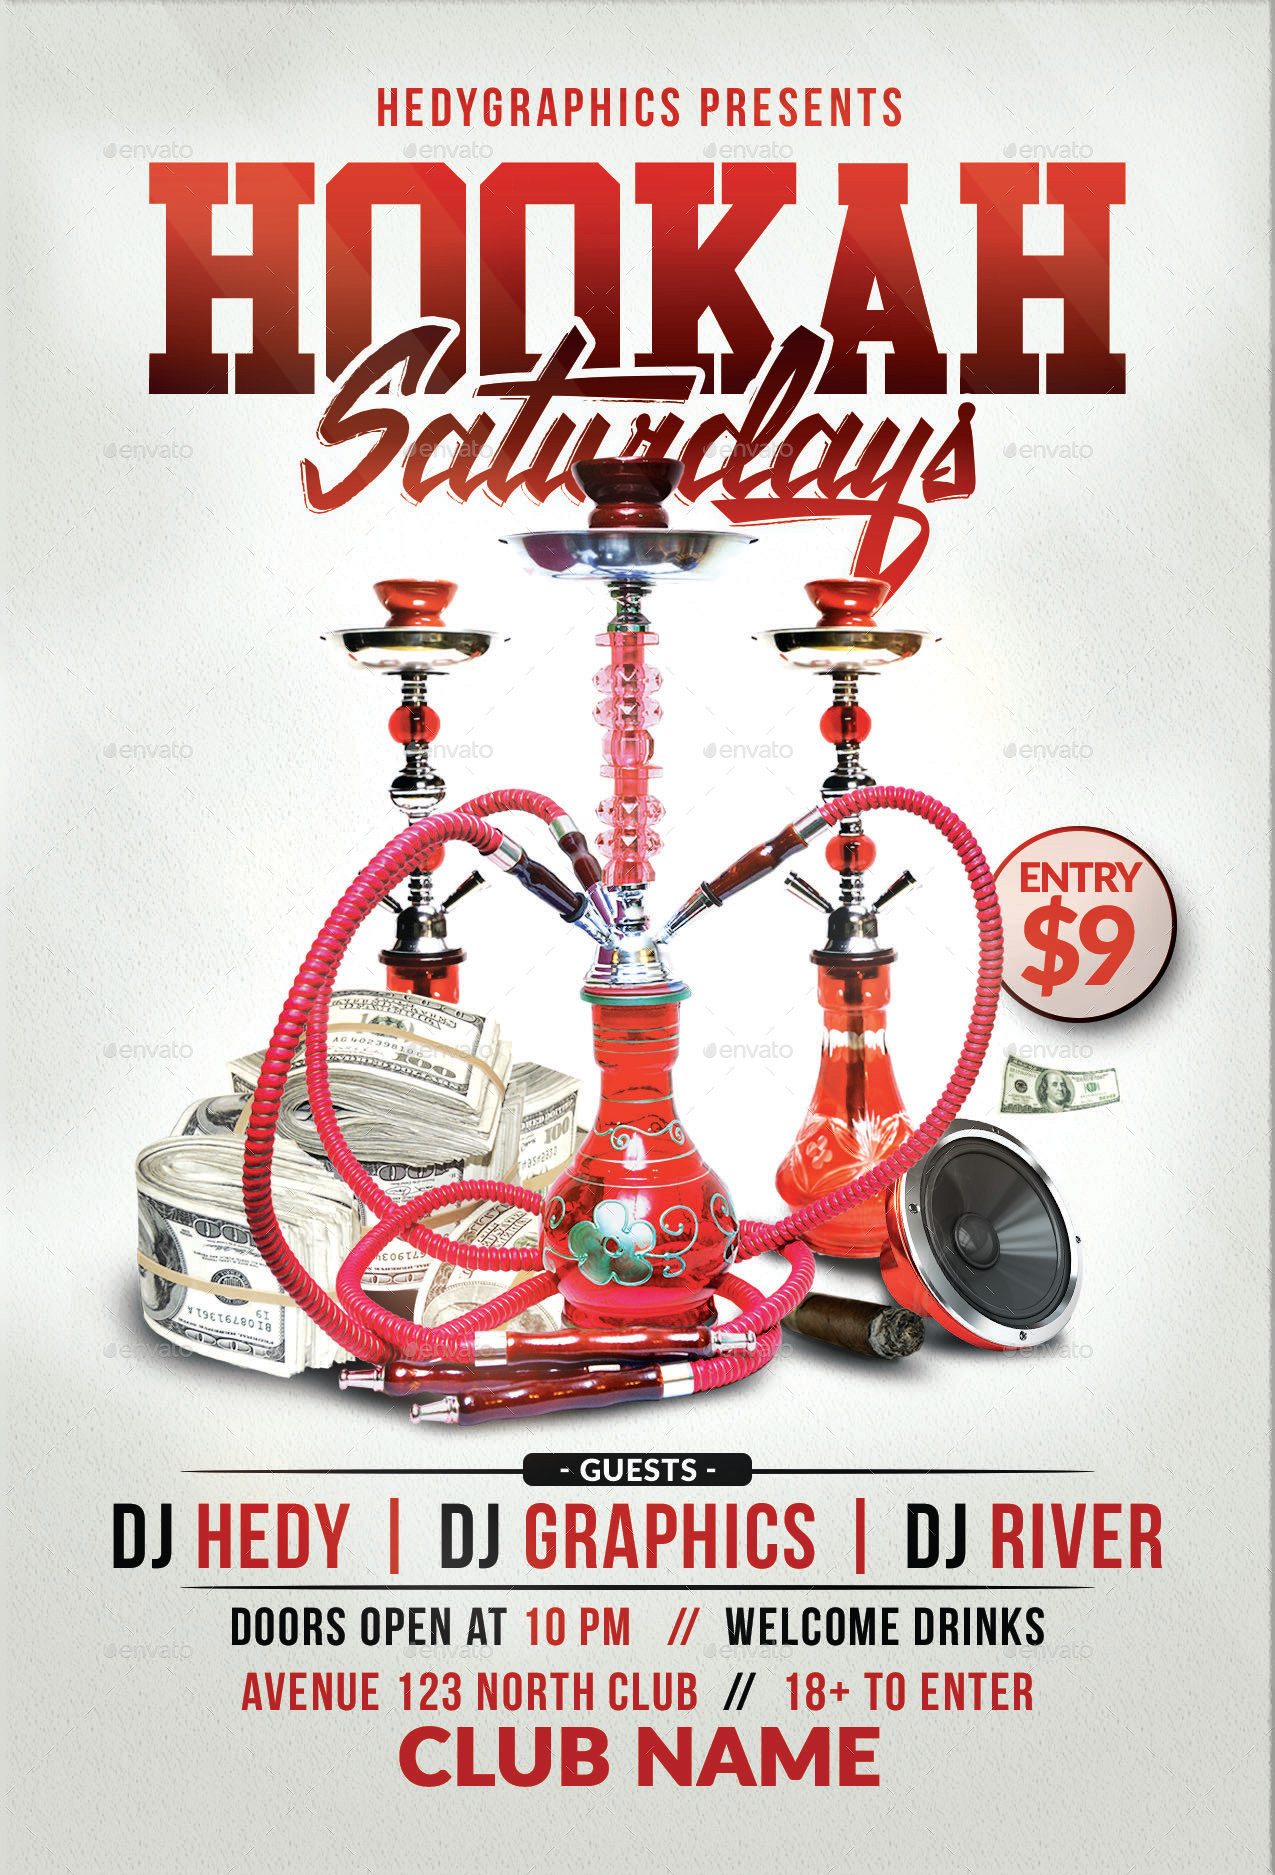 Hookah Saturdays Flyer Template By Hedygraphics